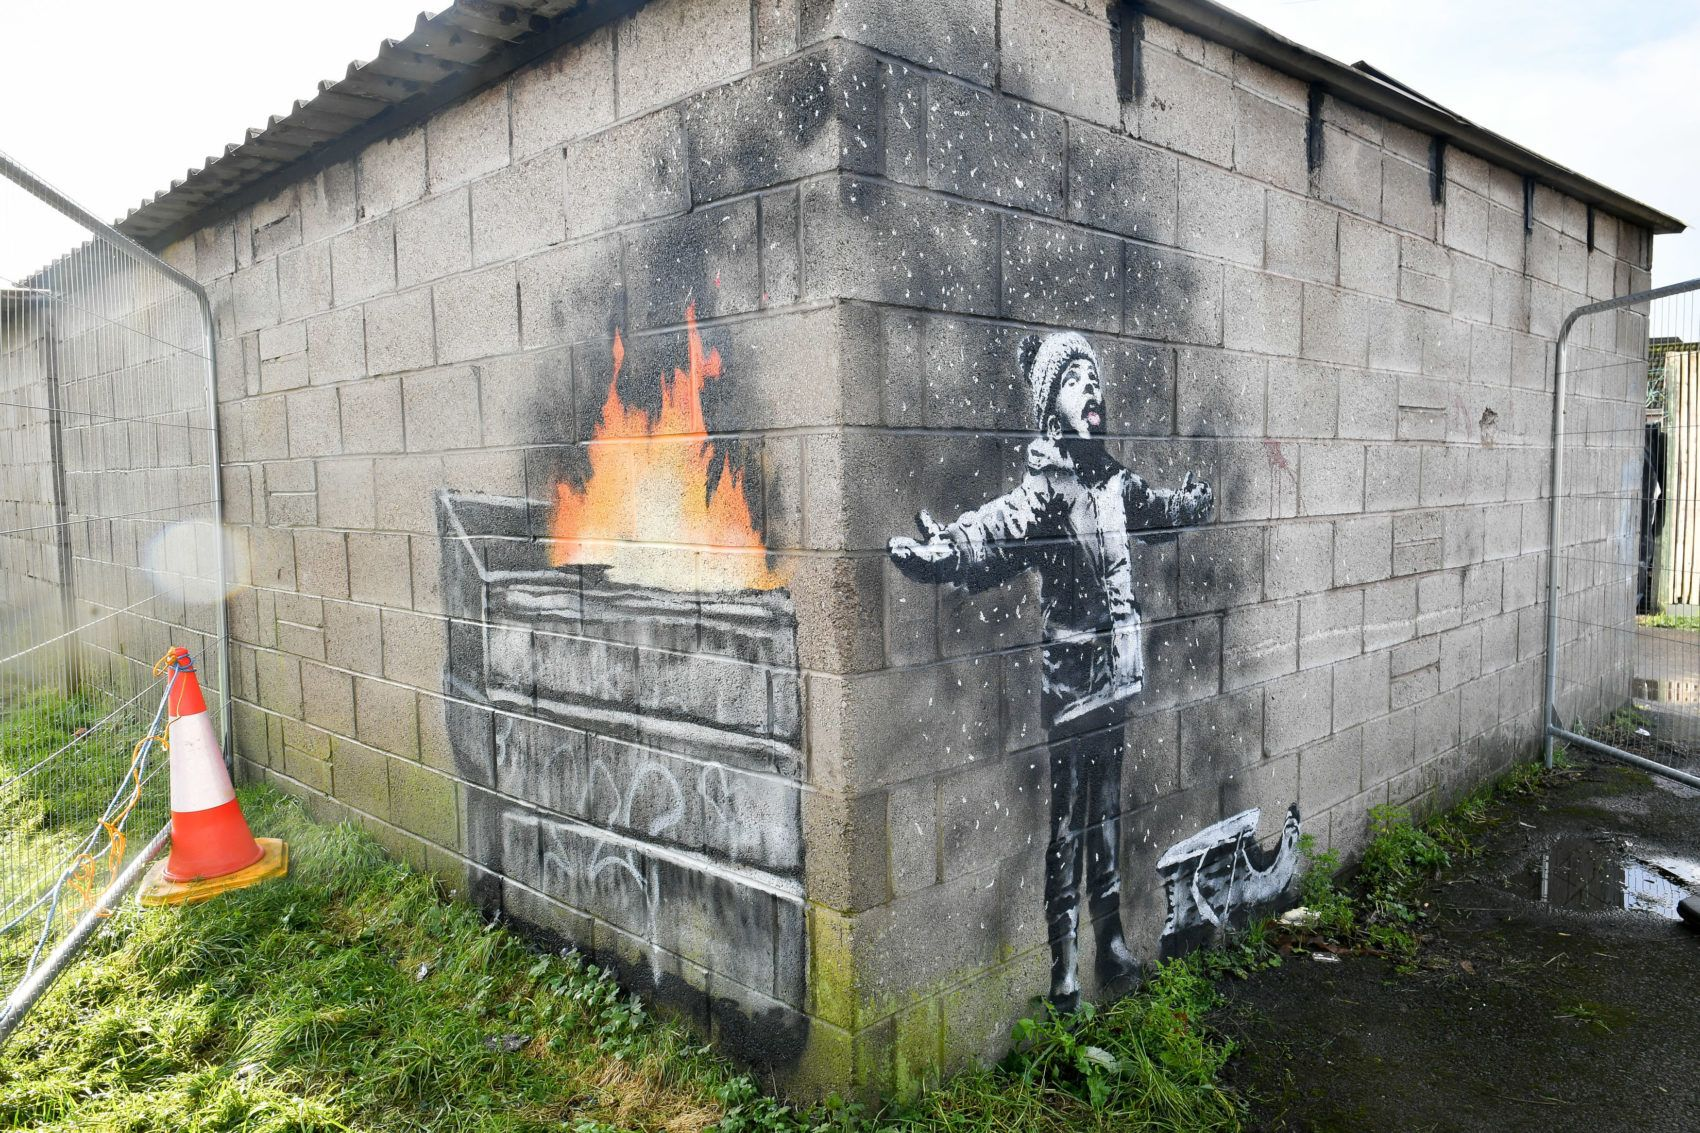 Whatever became of Banksy's gift to Port Talbot?